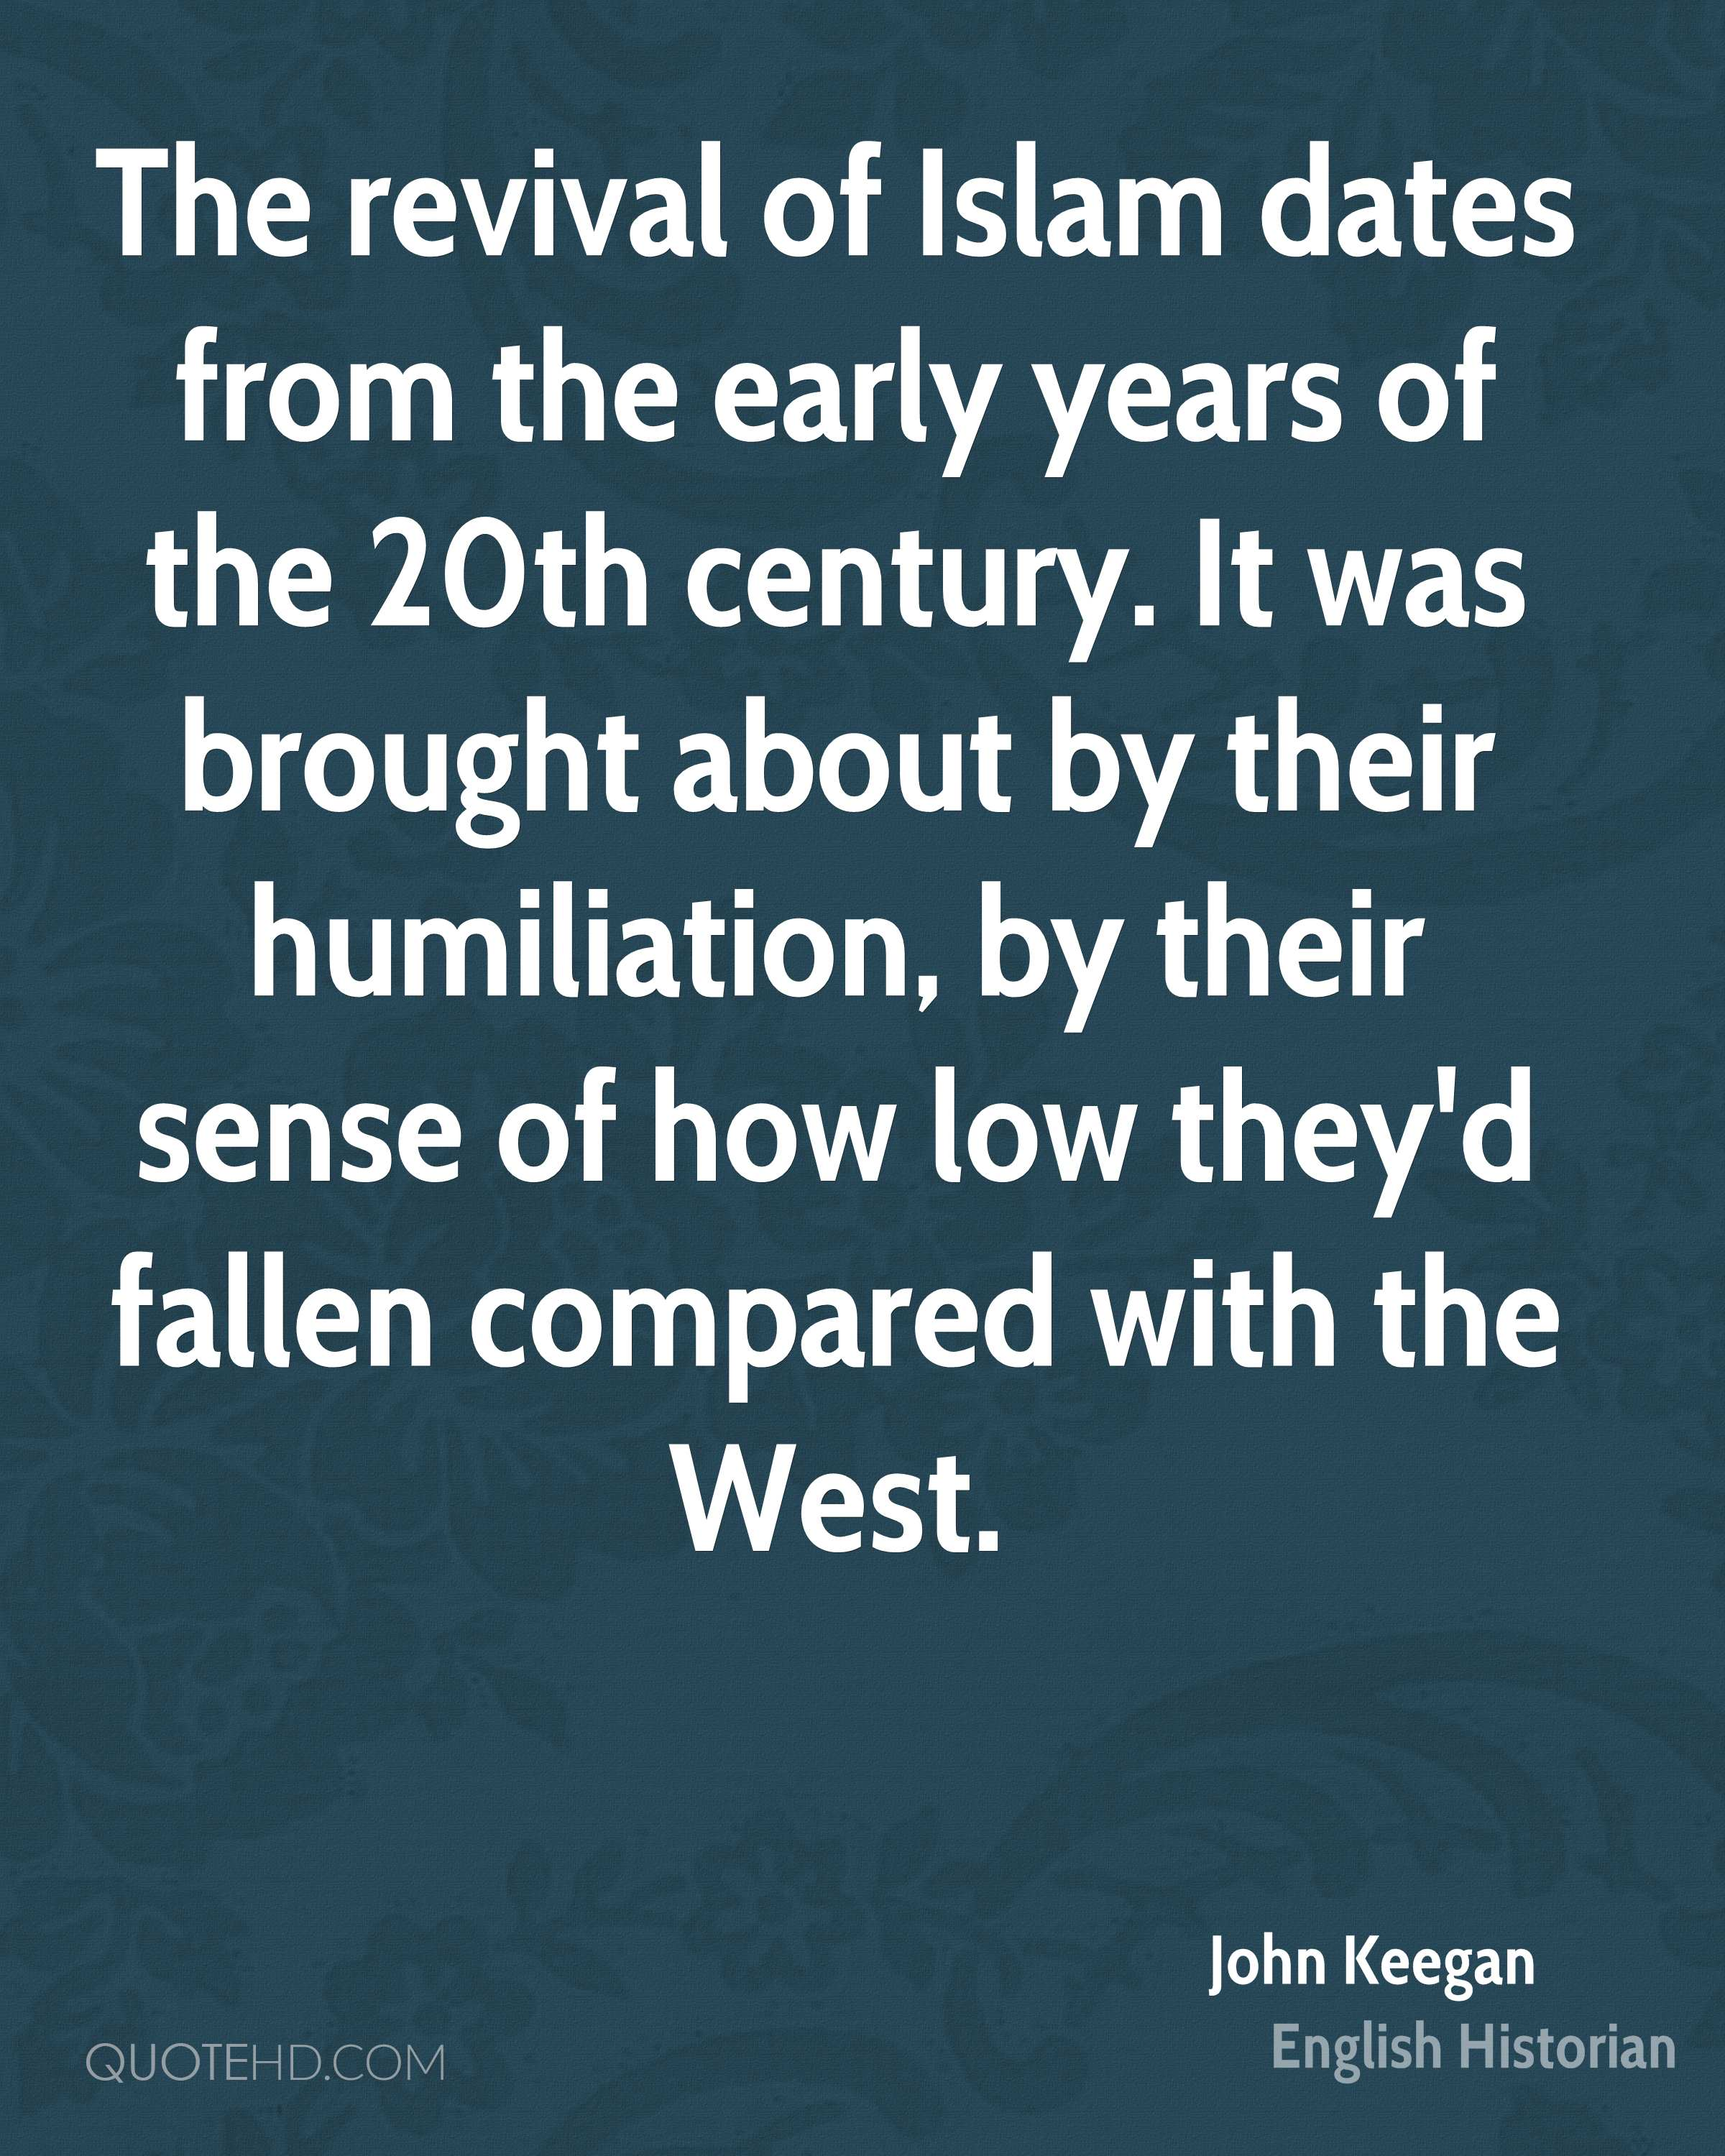 The revival of Islam dates from the early years of the 20th century. It was brought about by their humiliation, by their sense of how low they'd fallen compared with the West.